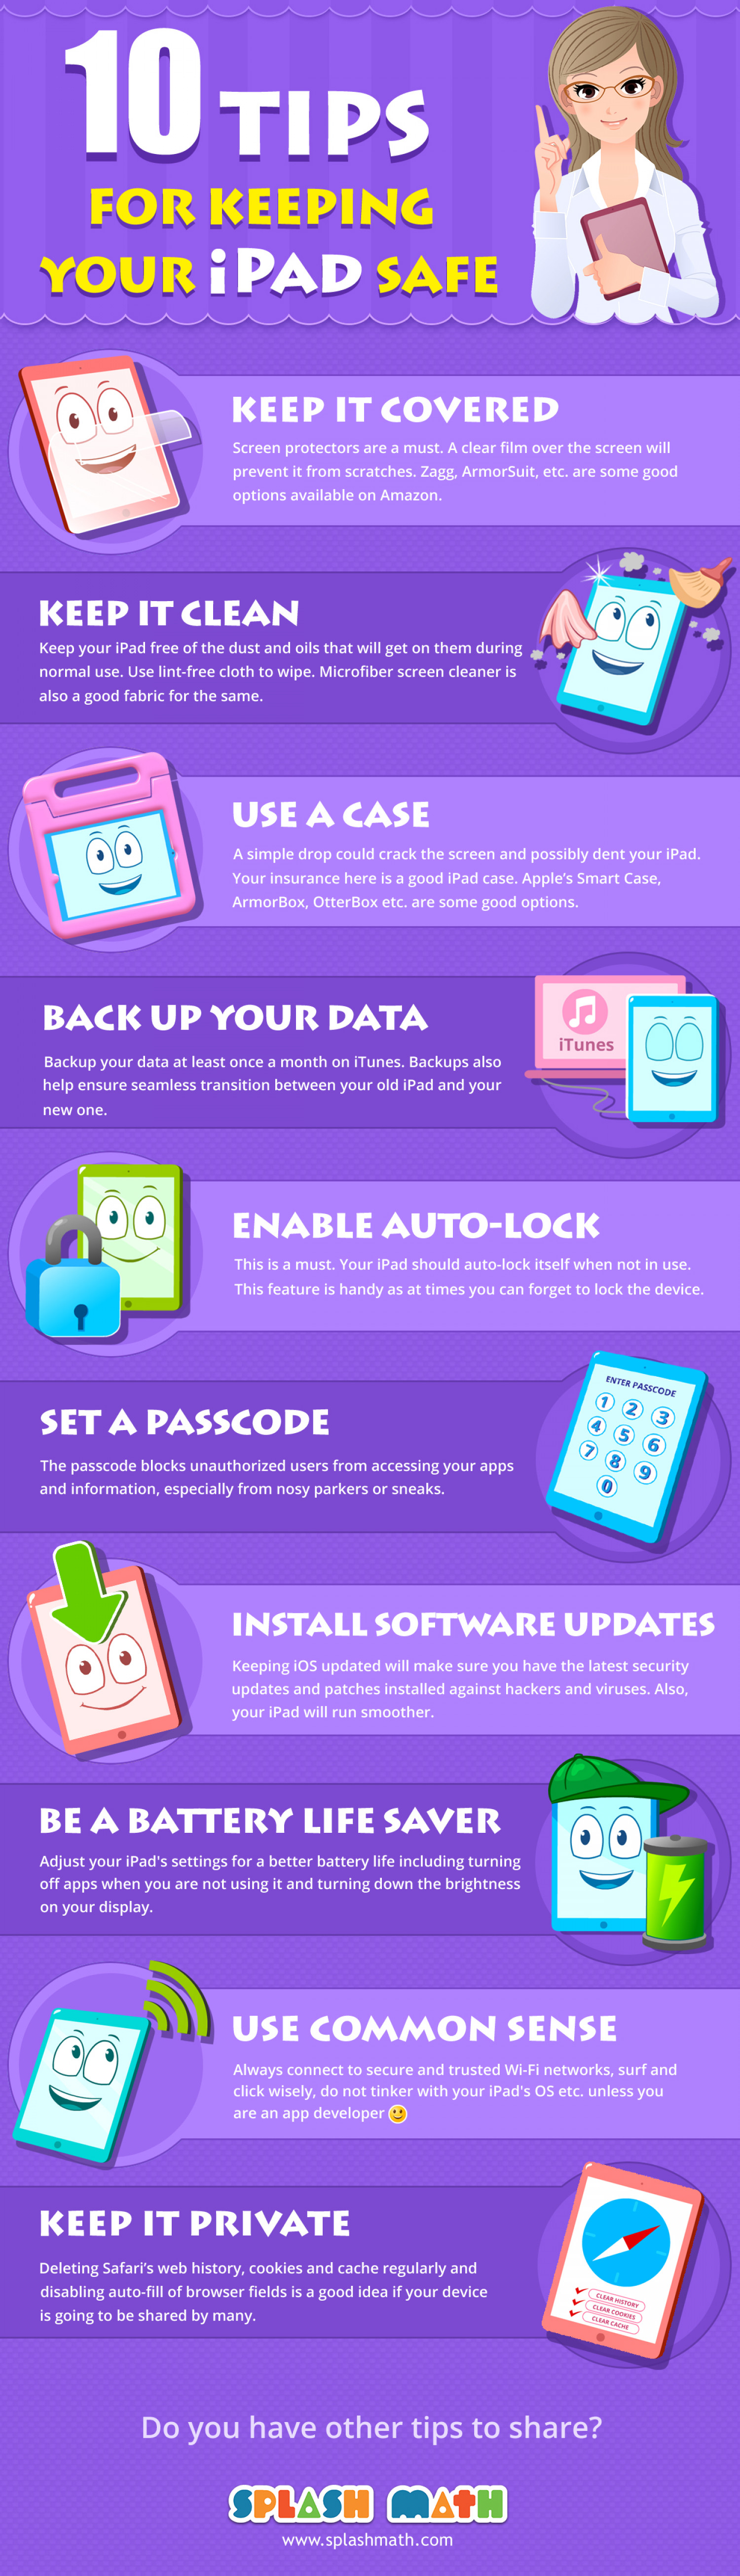 10 Tips For Keeping Your iPad Safe Infographic